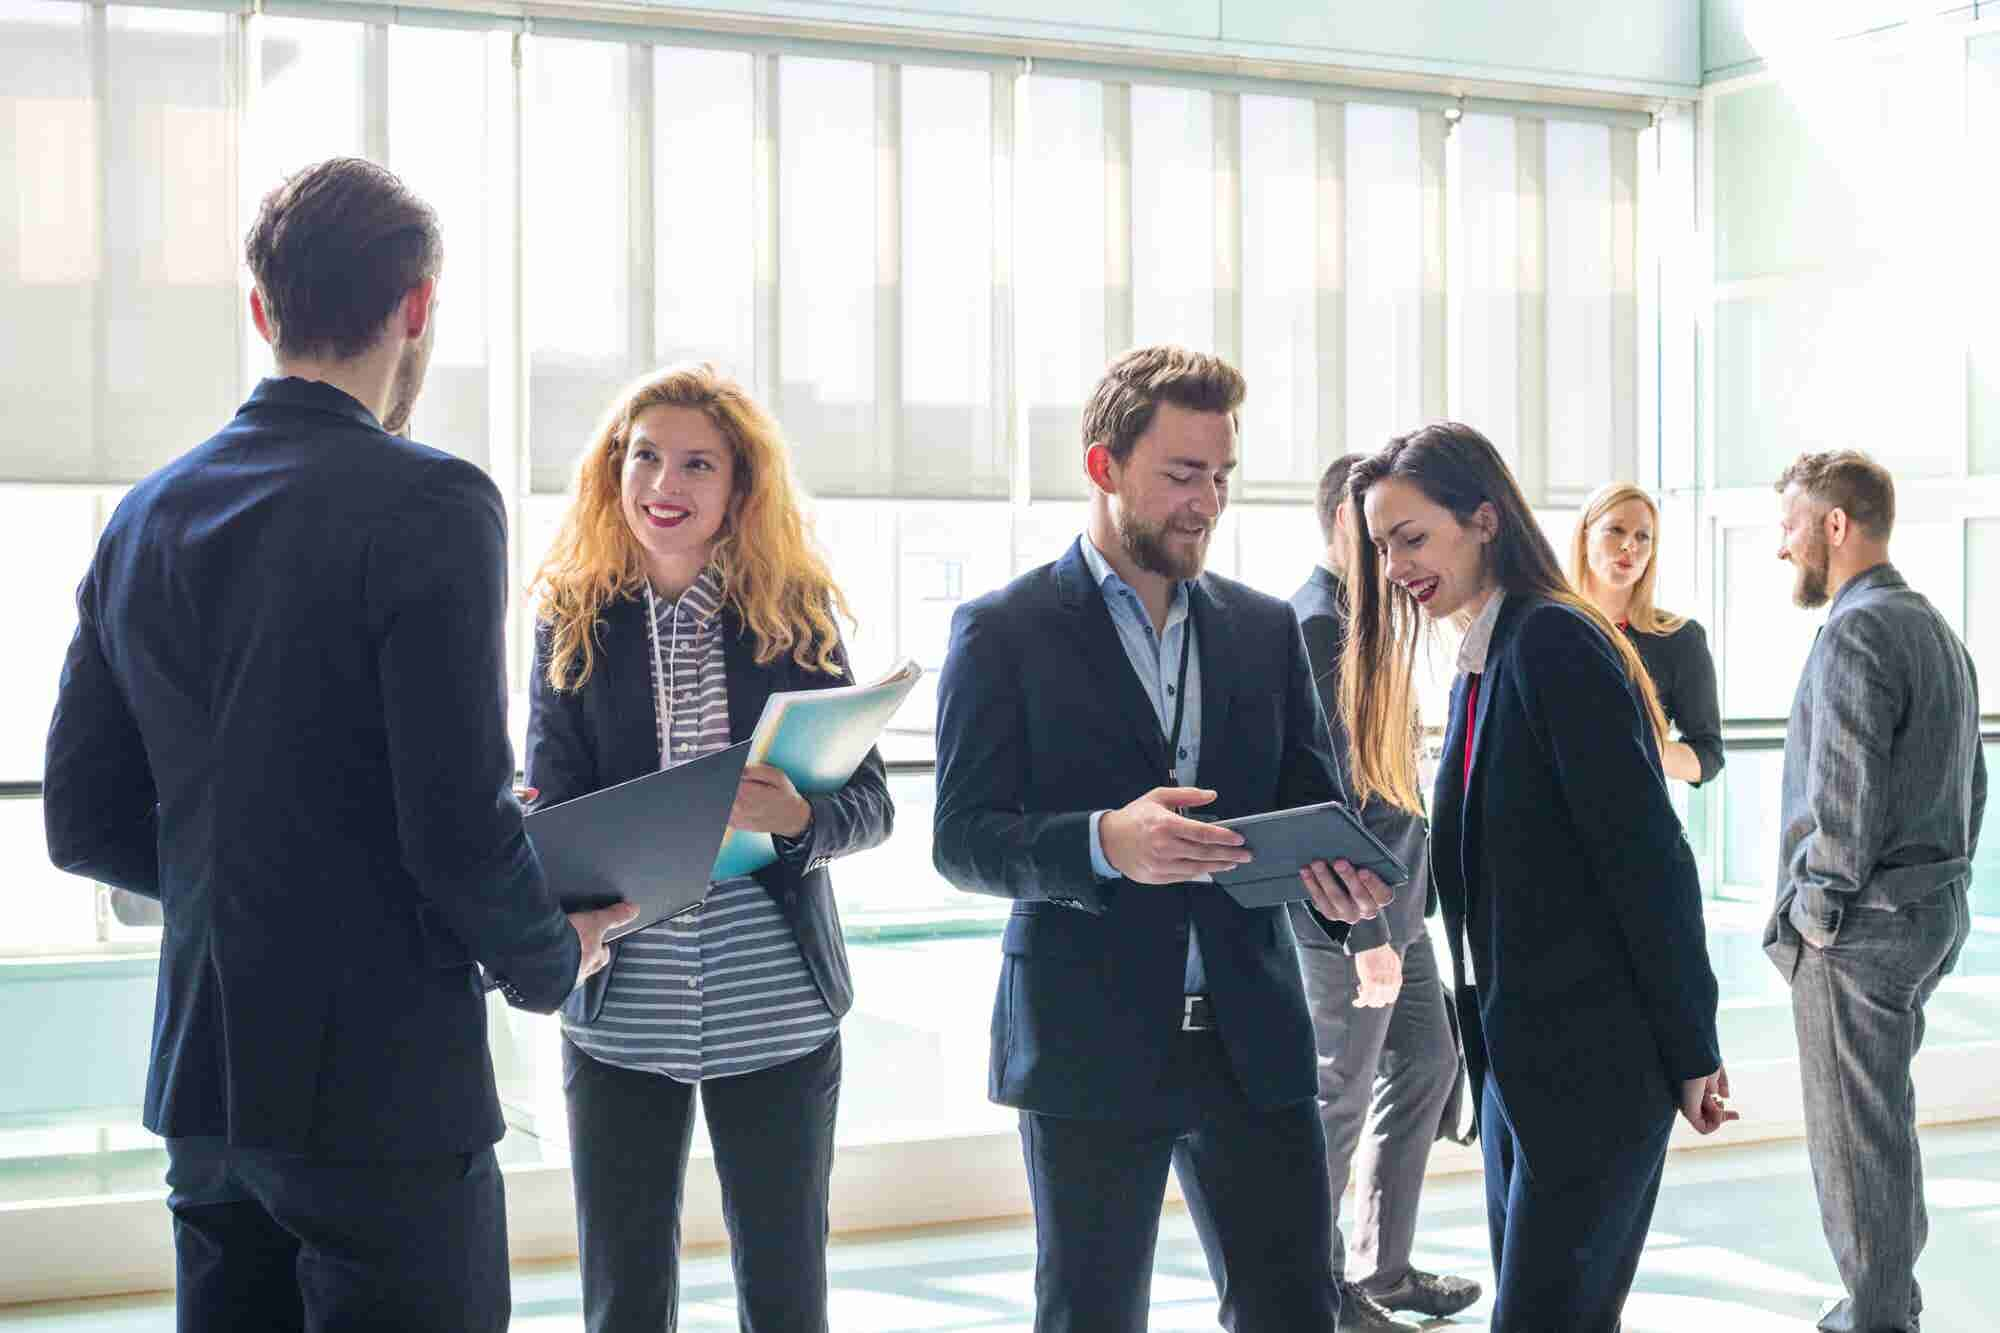 Even Introverts Can Excel at Networking by Following These Steps